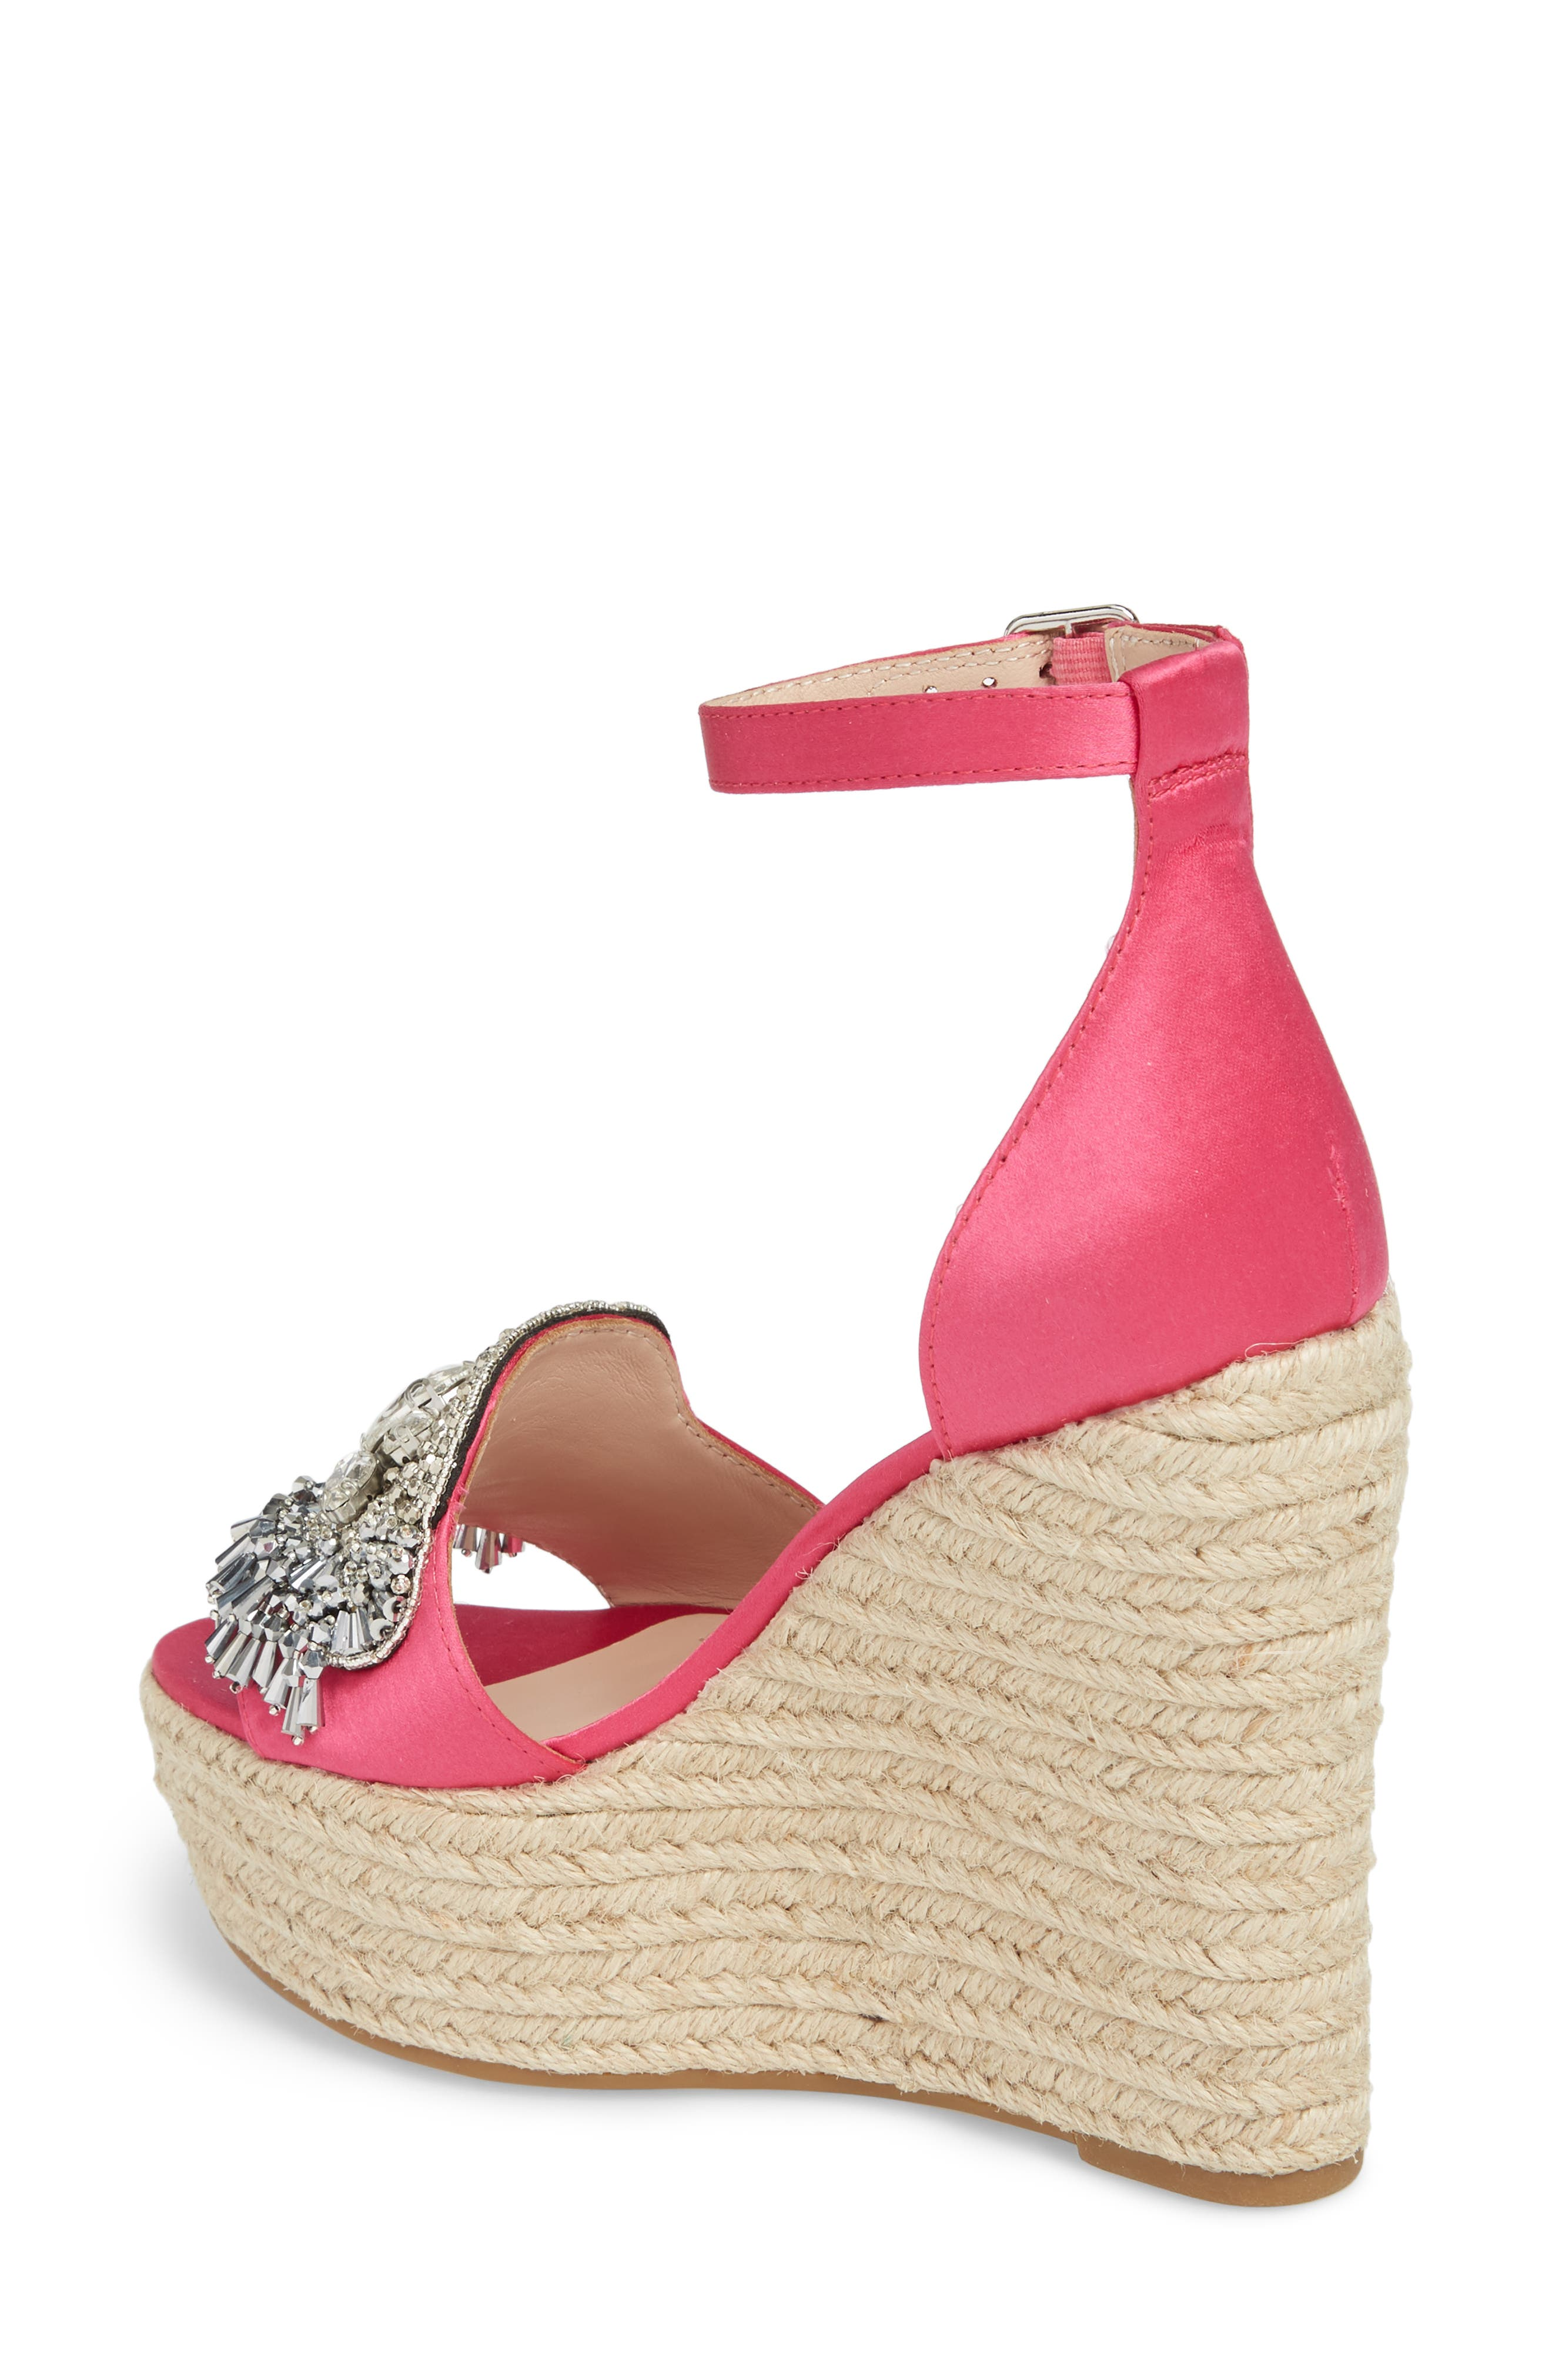 Maxim Platform Wedge Sandal,                             Alternate thumbnail 2, color,                             Posey Satin